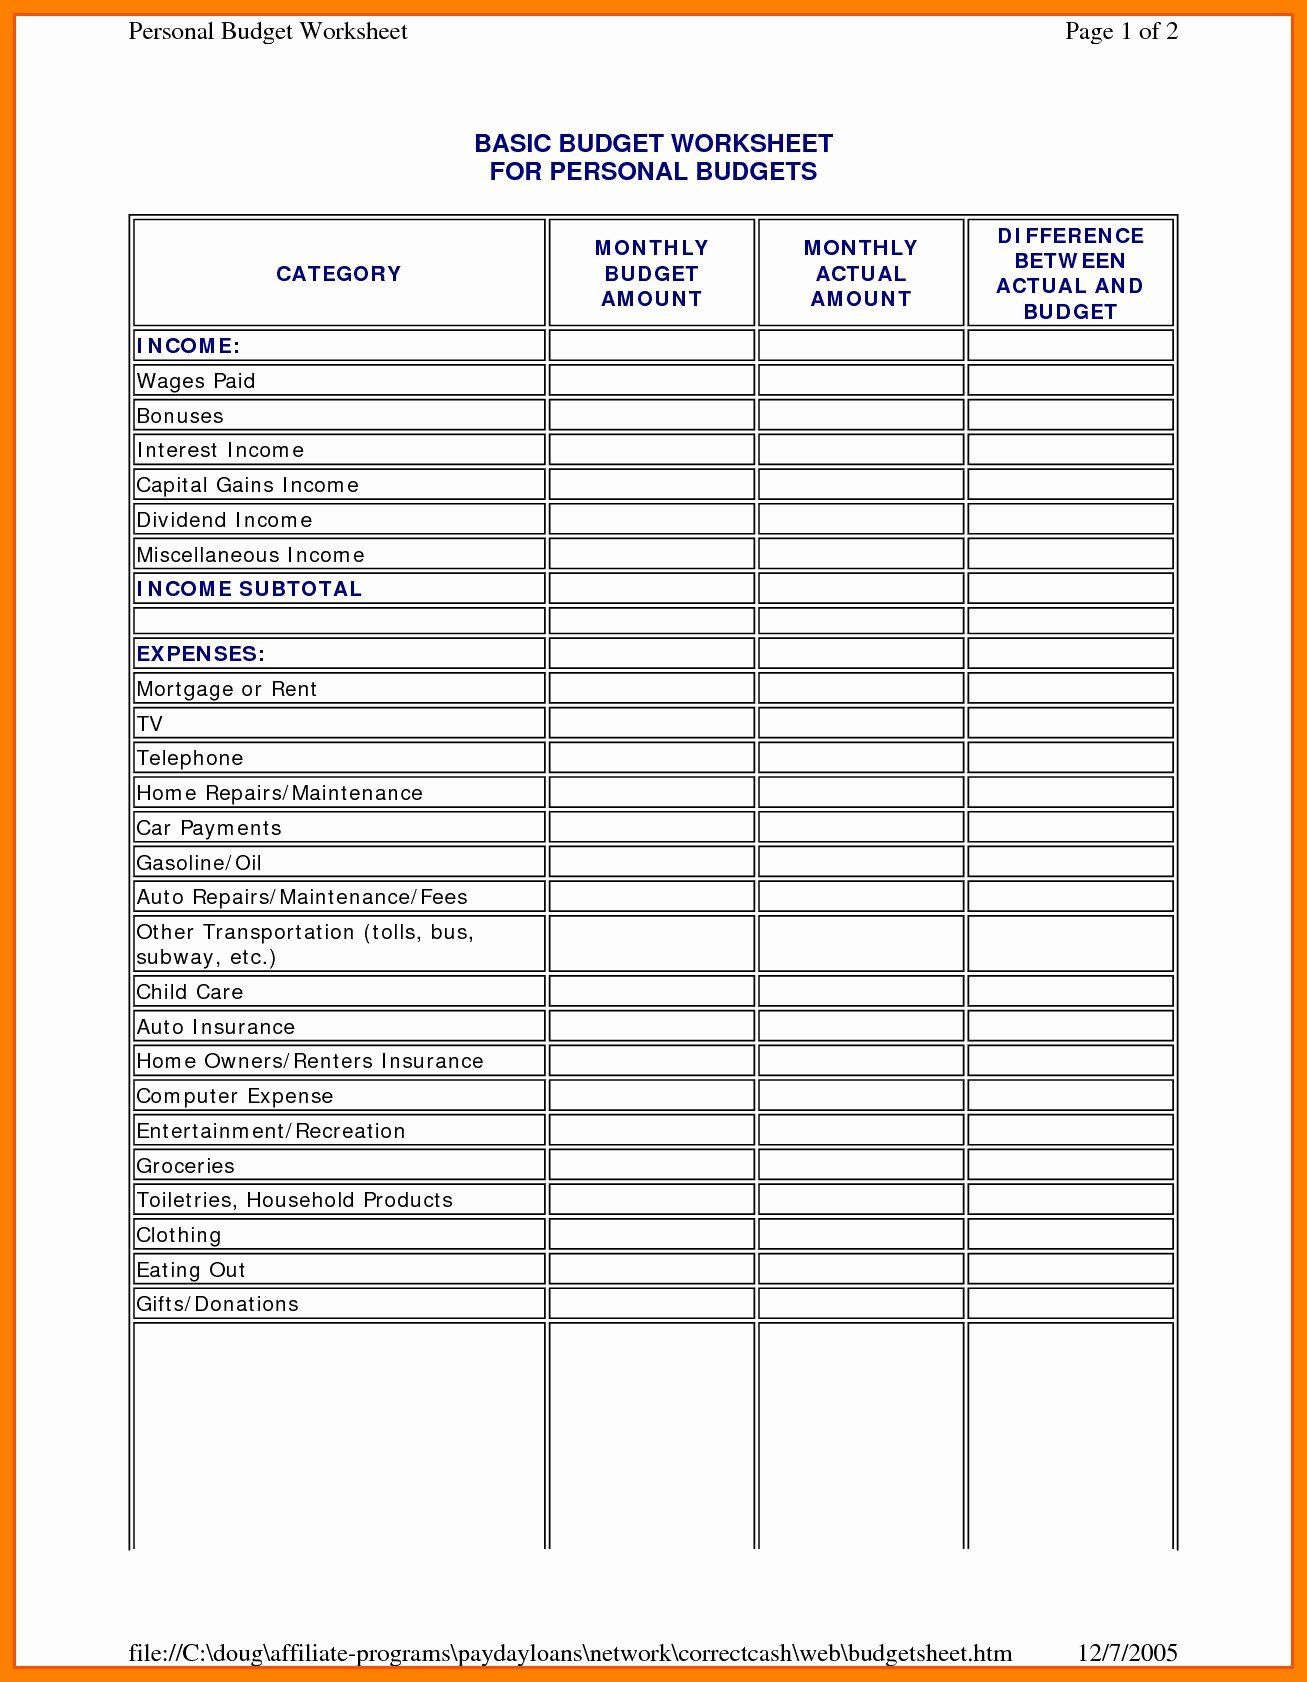 022 Plan Templates Destination Wedding Budget Template Spreadsheet Or Budgets For Dummies Worksheets